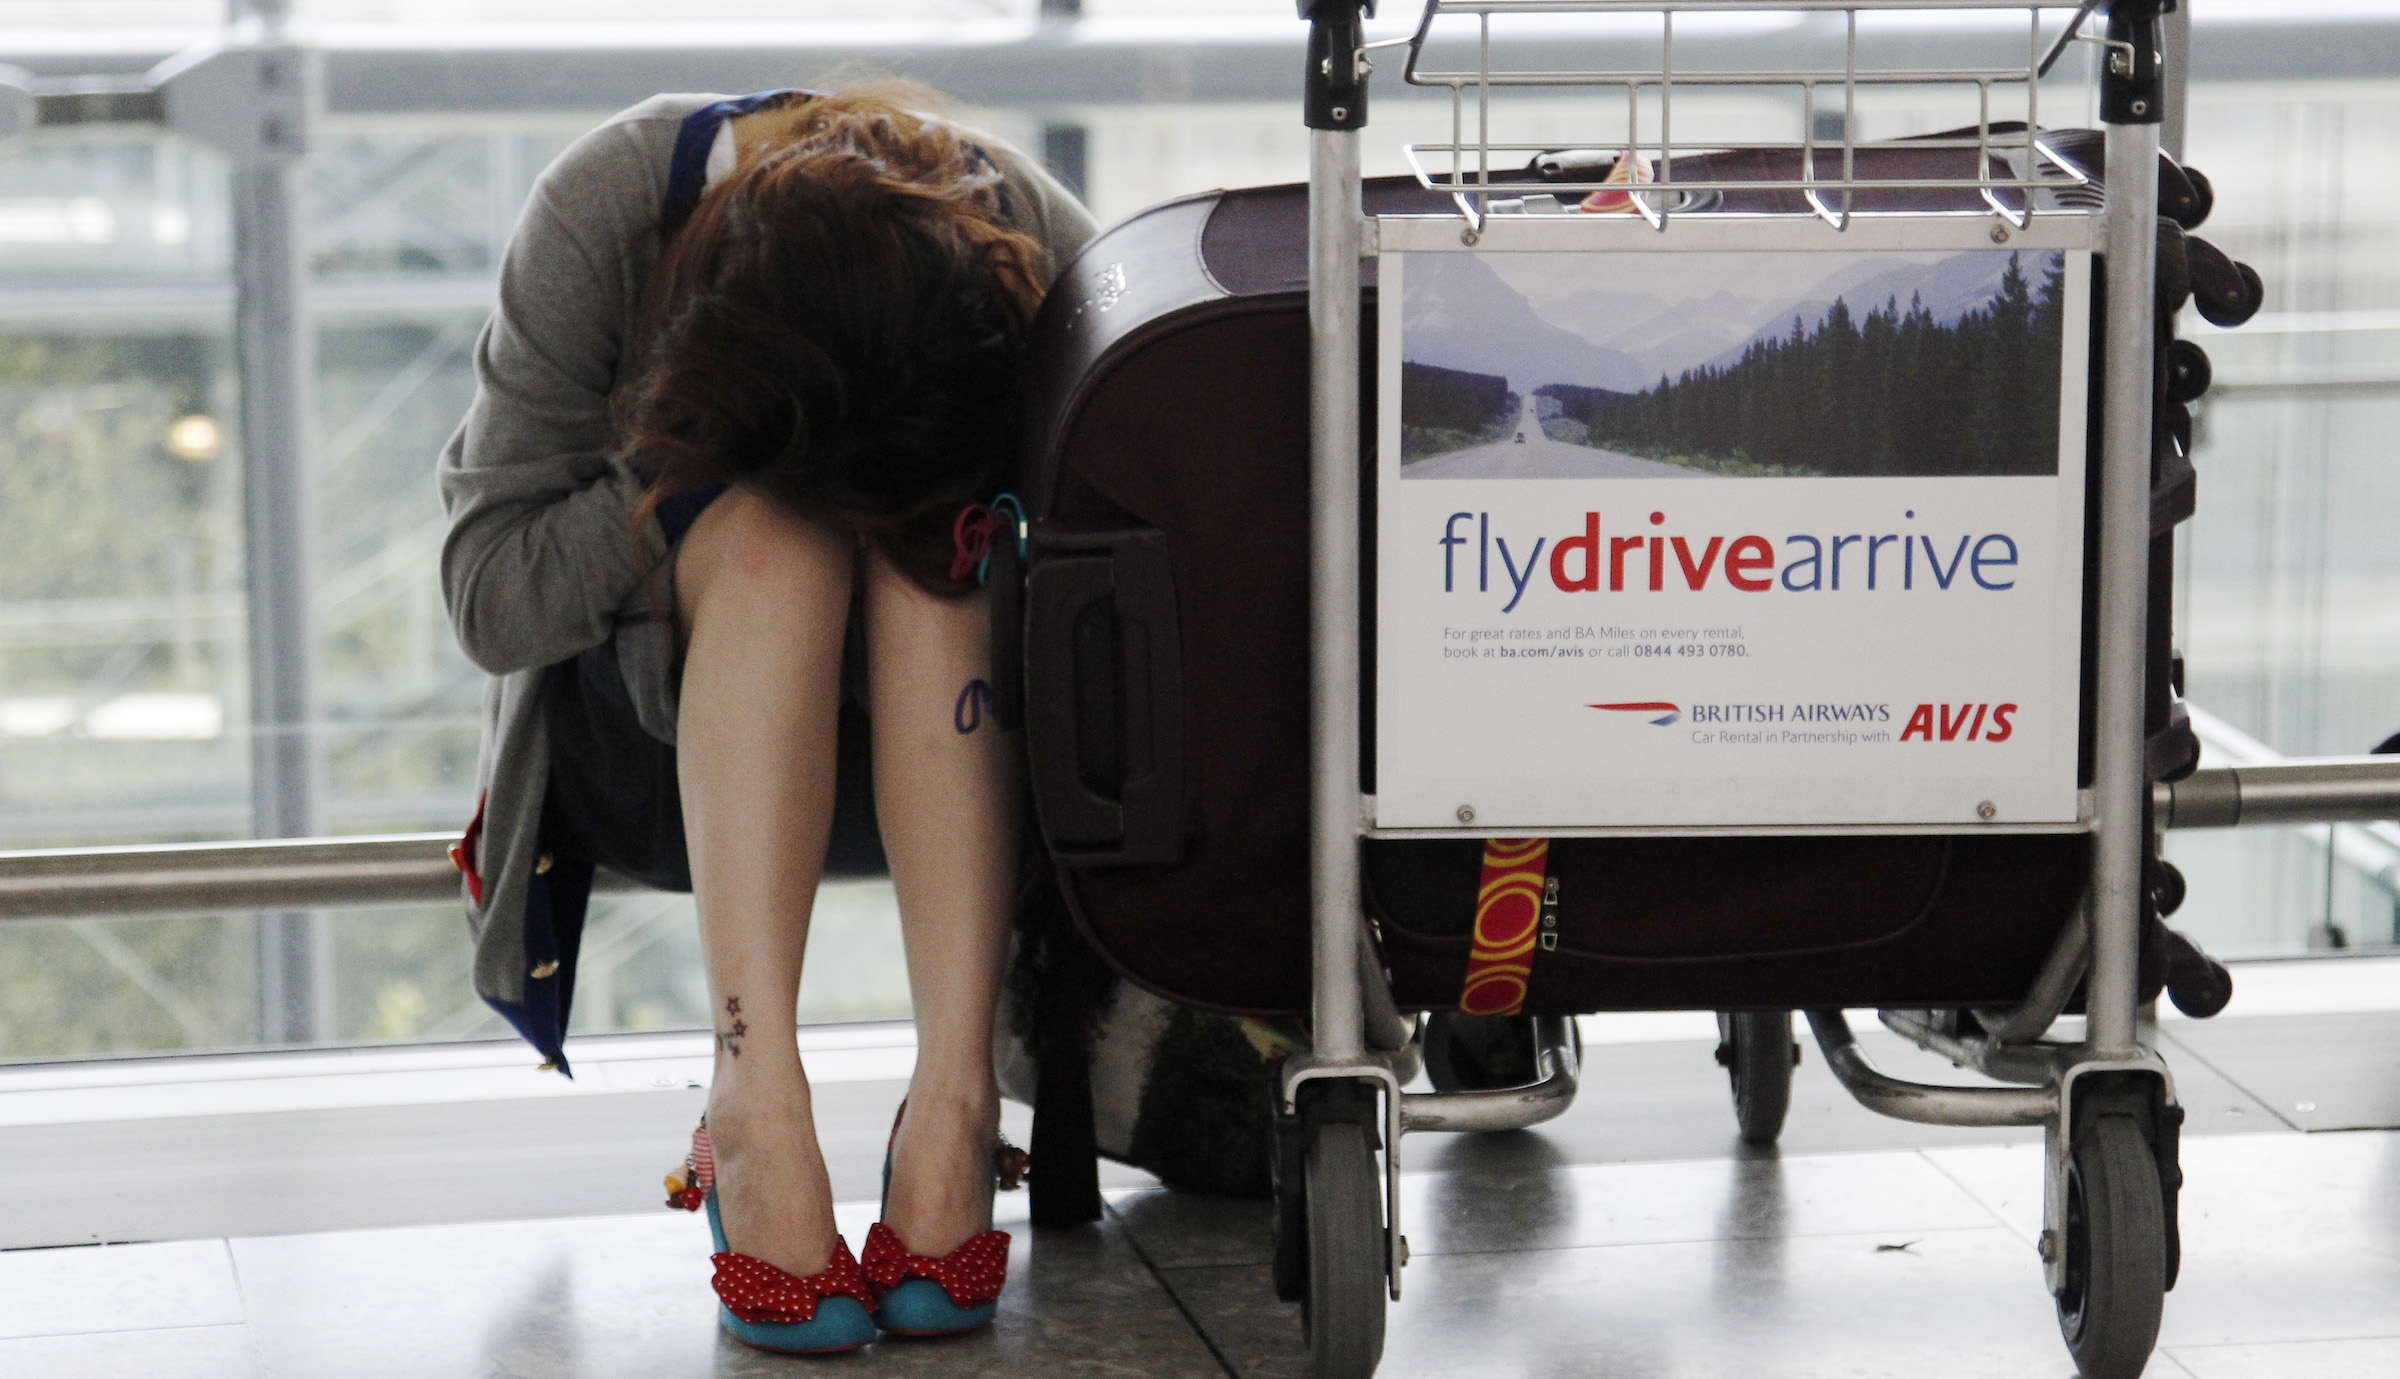 A traveller rests with her luggage as flights are delayed and cancelled at Heathrow Airport in London May 17, 2010. Volcanic ash from Iceland grounded 1,000 flights and delayed hundreds of thousands of passengers in parts of northern Europe on Monday. Several of Europe's busiest airports, including London's Heathrow and Schiphol in Amsterdam, were closed for several hours due to fears the ash could damage jet engines and bring down aircraft.       REUTERS/Luke MacGregor (BRITAIN - Tags: TRANSPORT ENVIRONMENT EMPLOYMENT BUSINESS TRAVEL SOCIETY) - RTR2DZYF